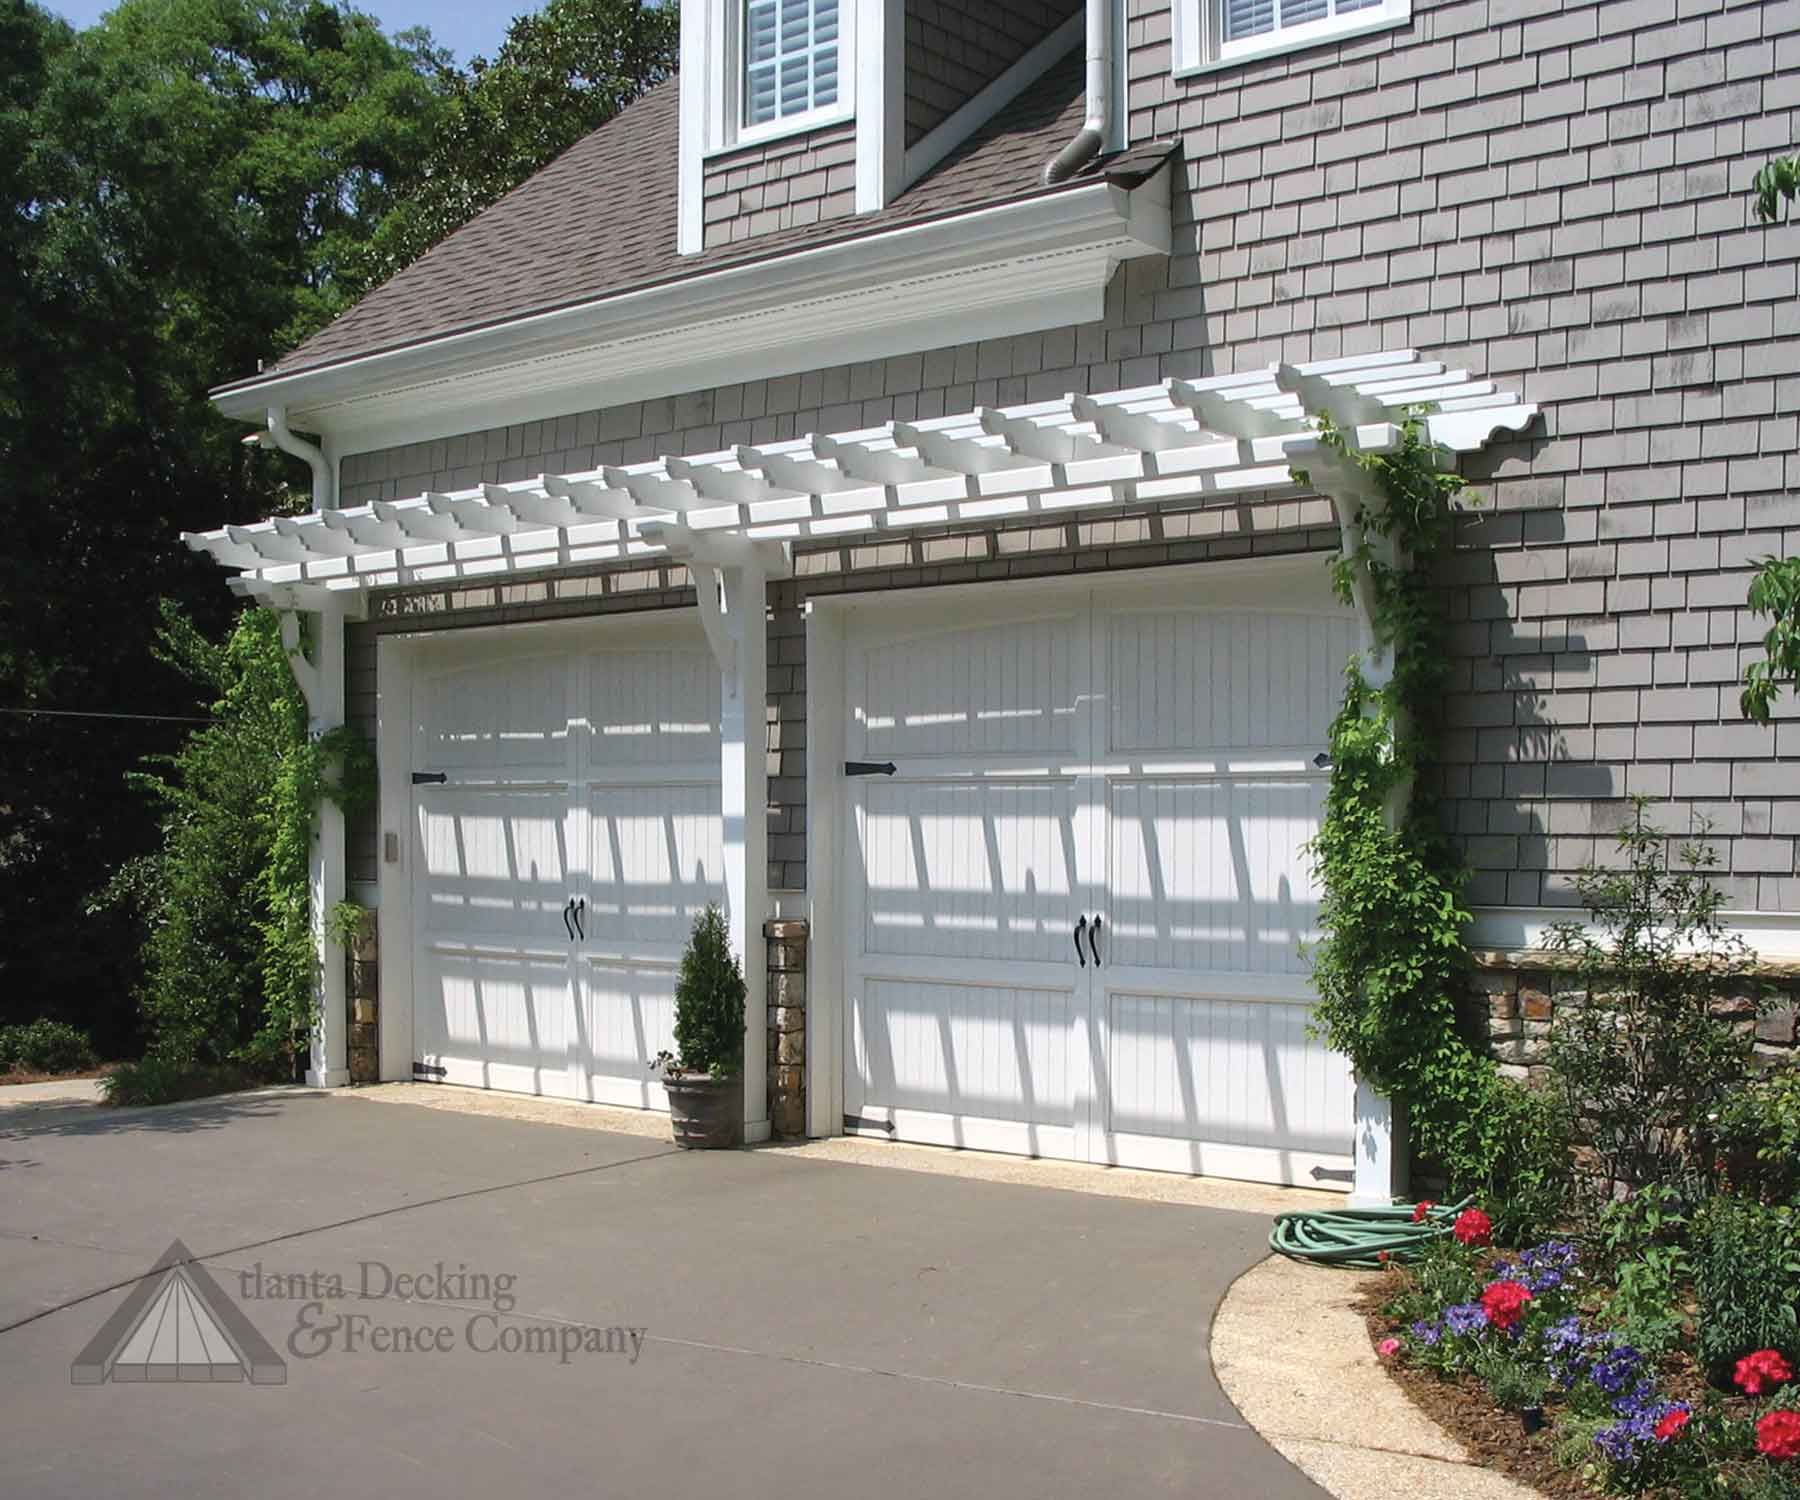 Ordinaire Superb Trellis Over Garage Door #9 Pergola Over Garage Door Trellis Arbor